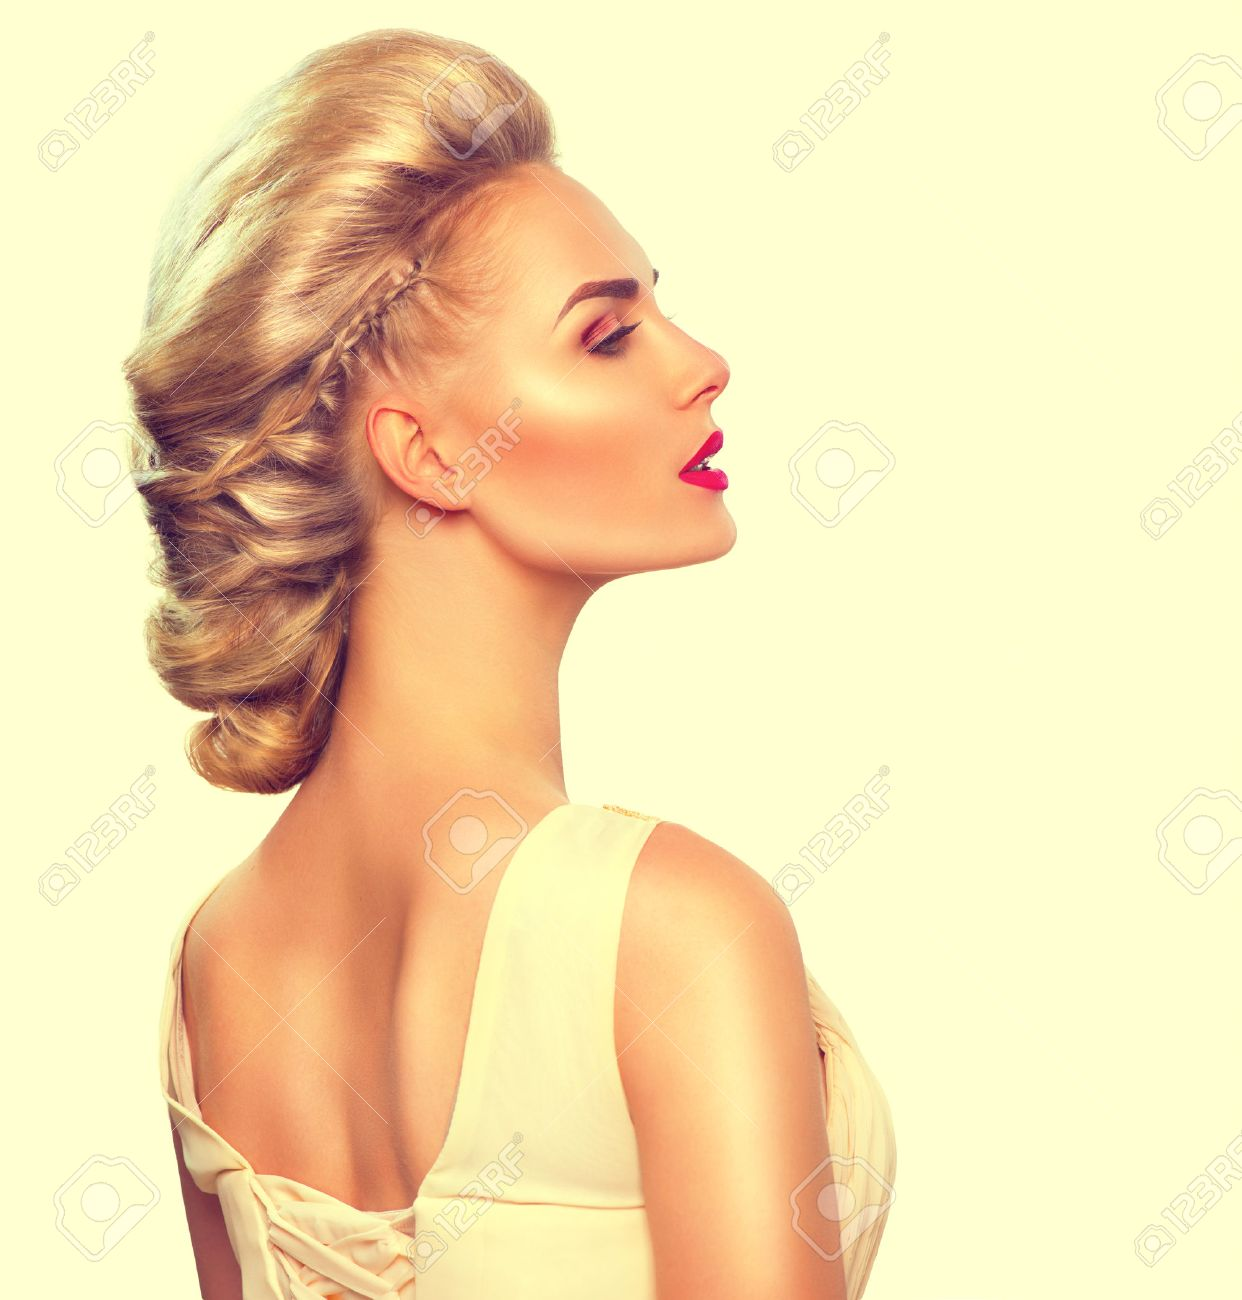 Fashion model girl portrait with updo hairstyle - 51892382